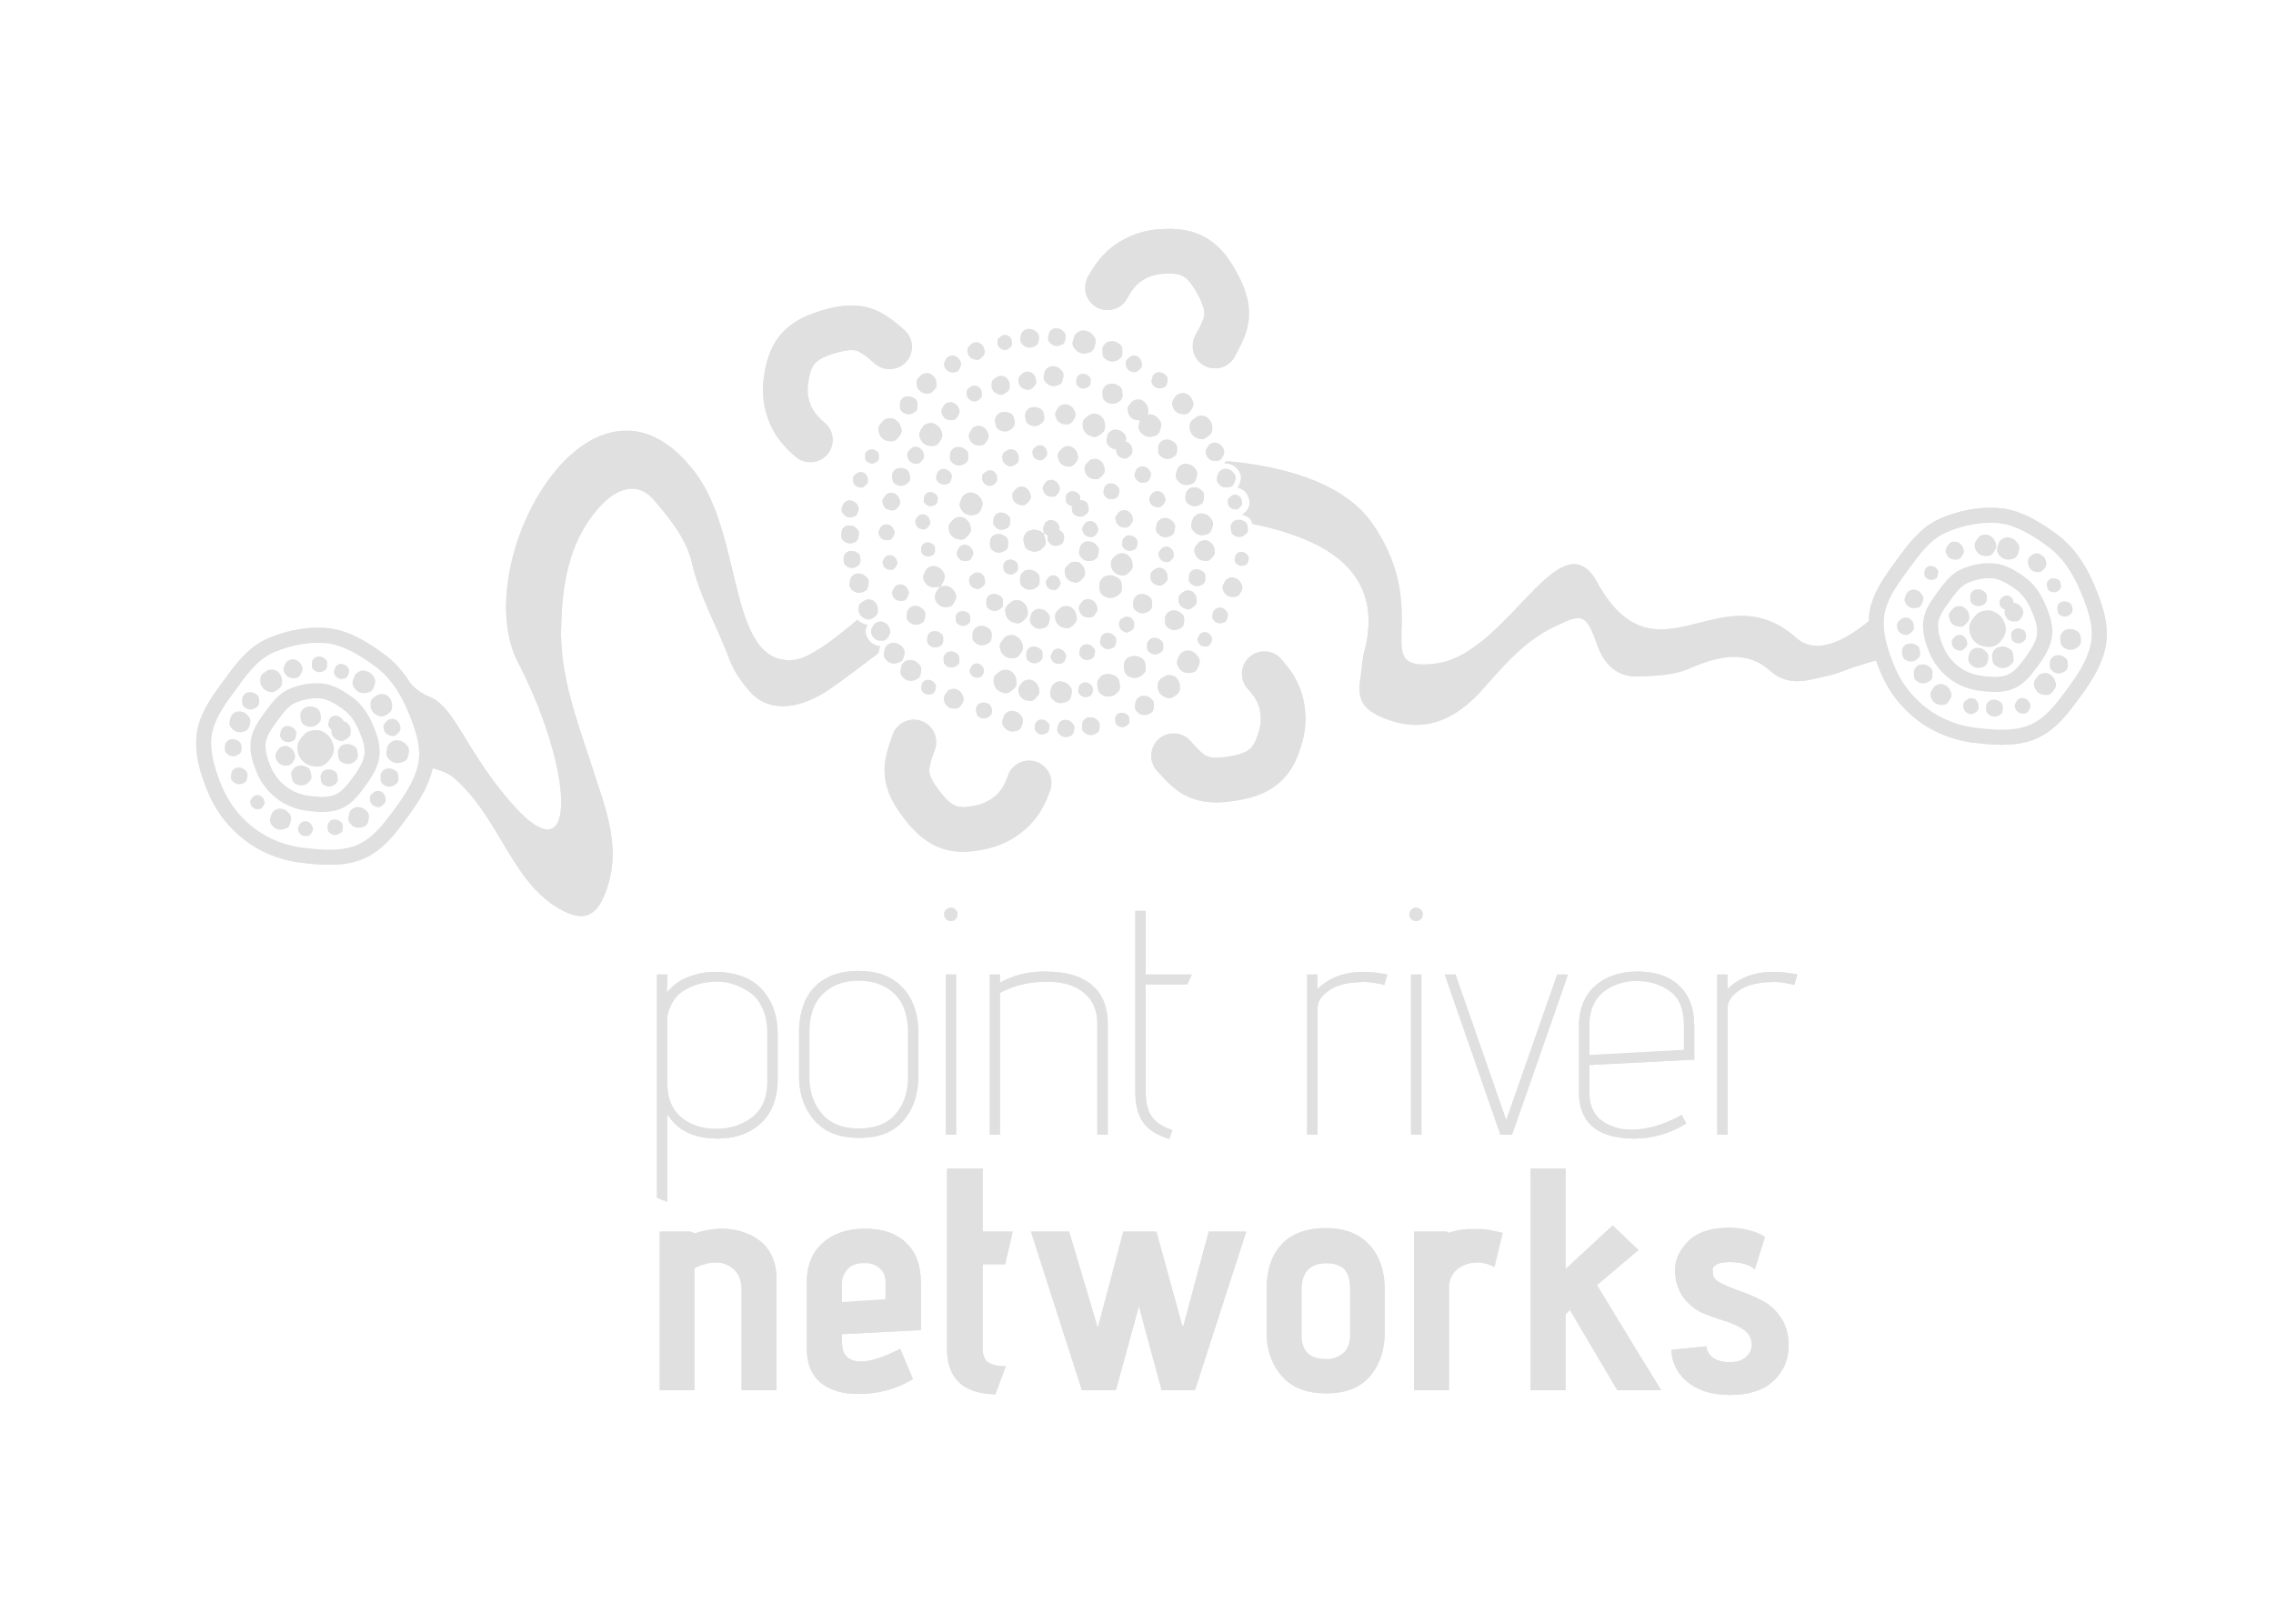 Point River Networks